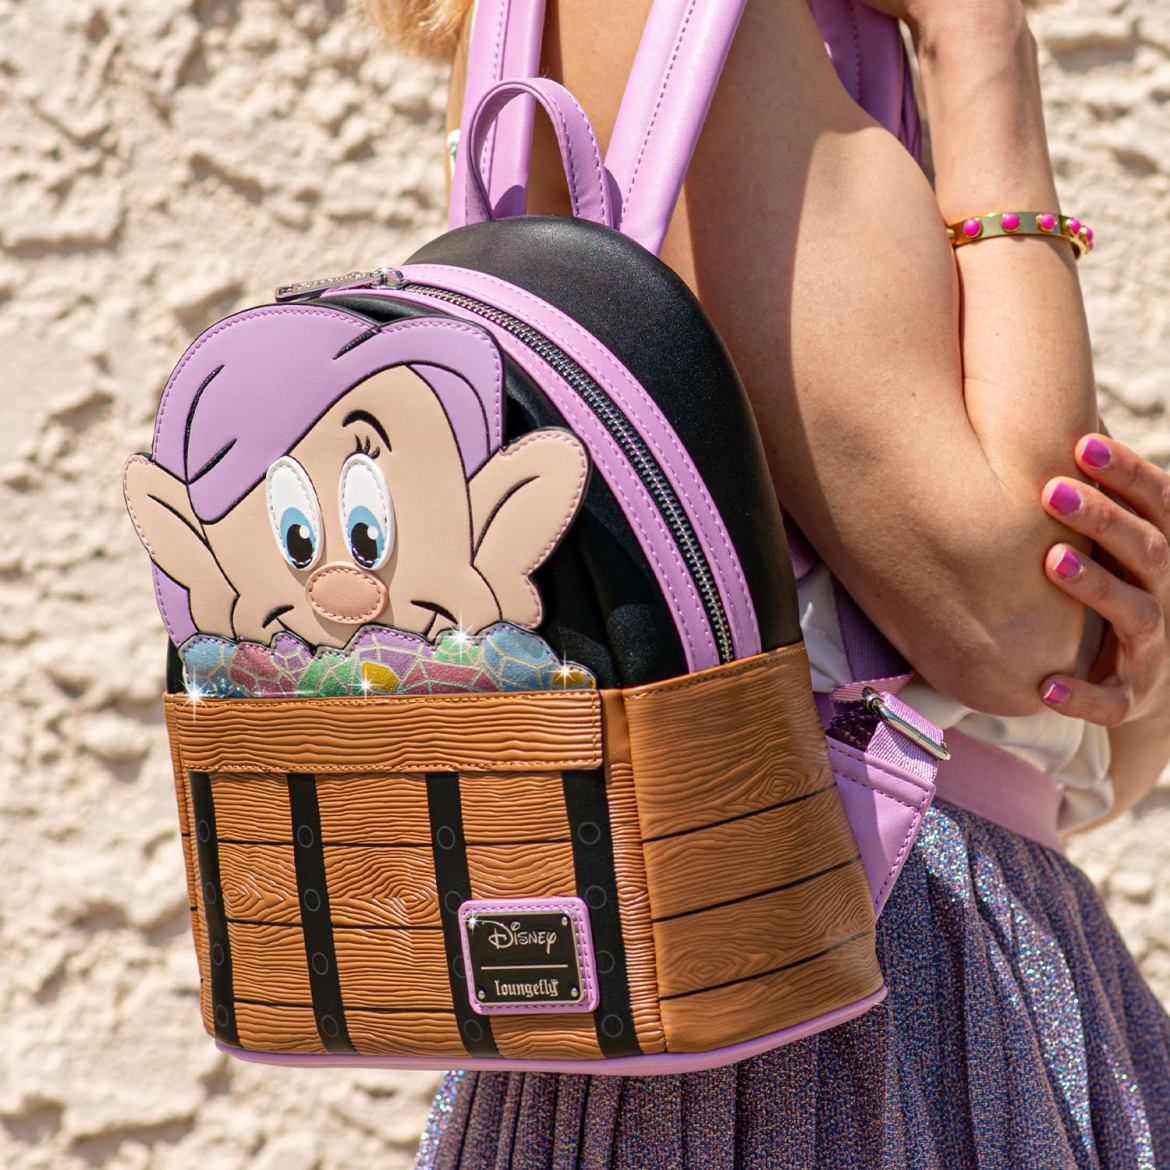 Dopey Loungefly Backpack and Snow White Collection Launch Today